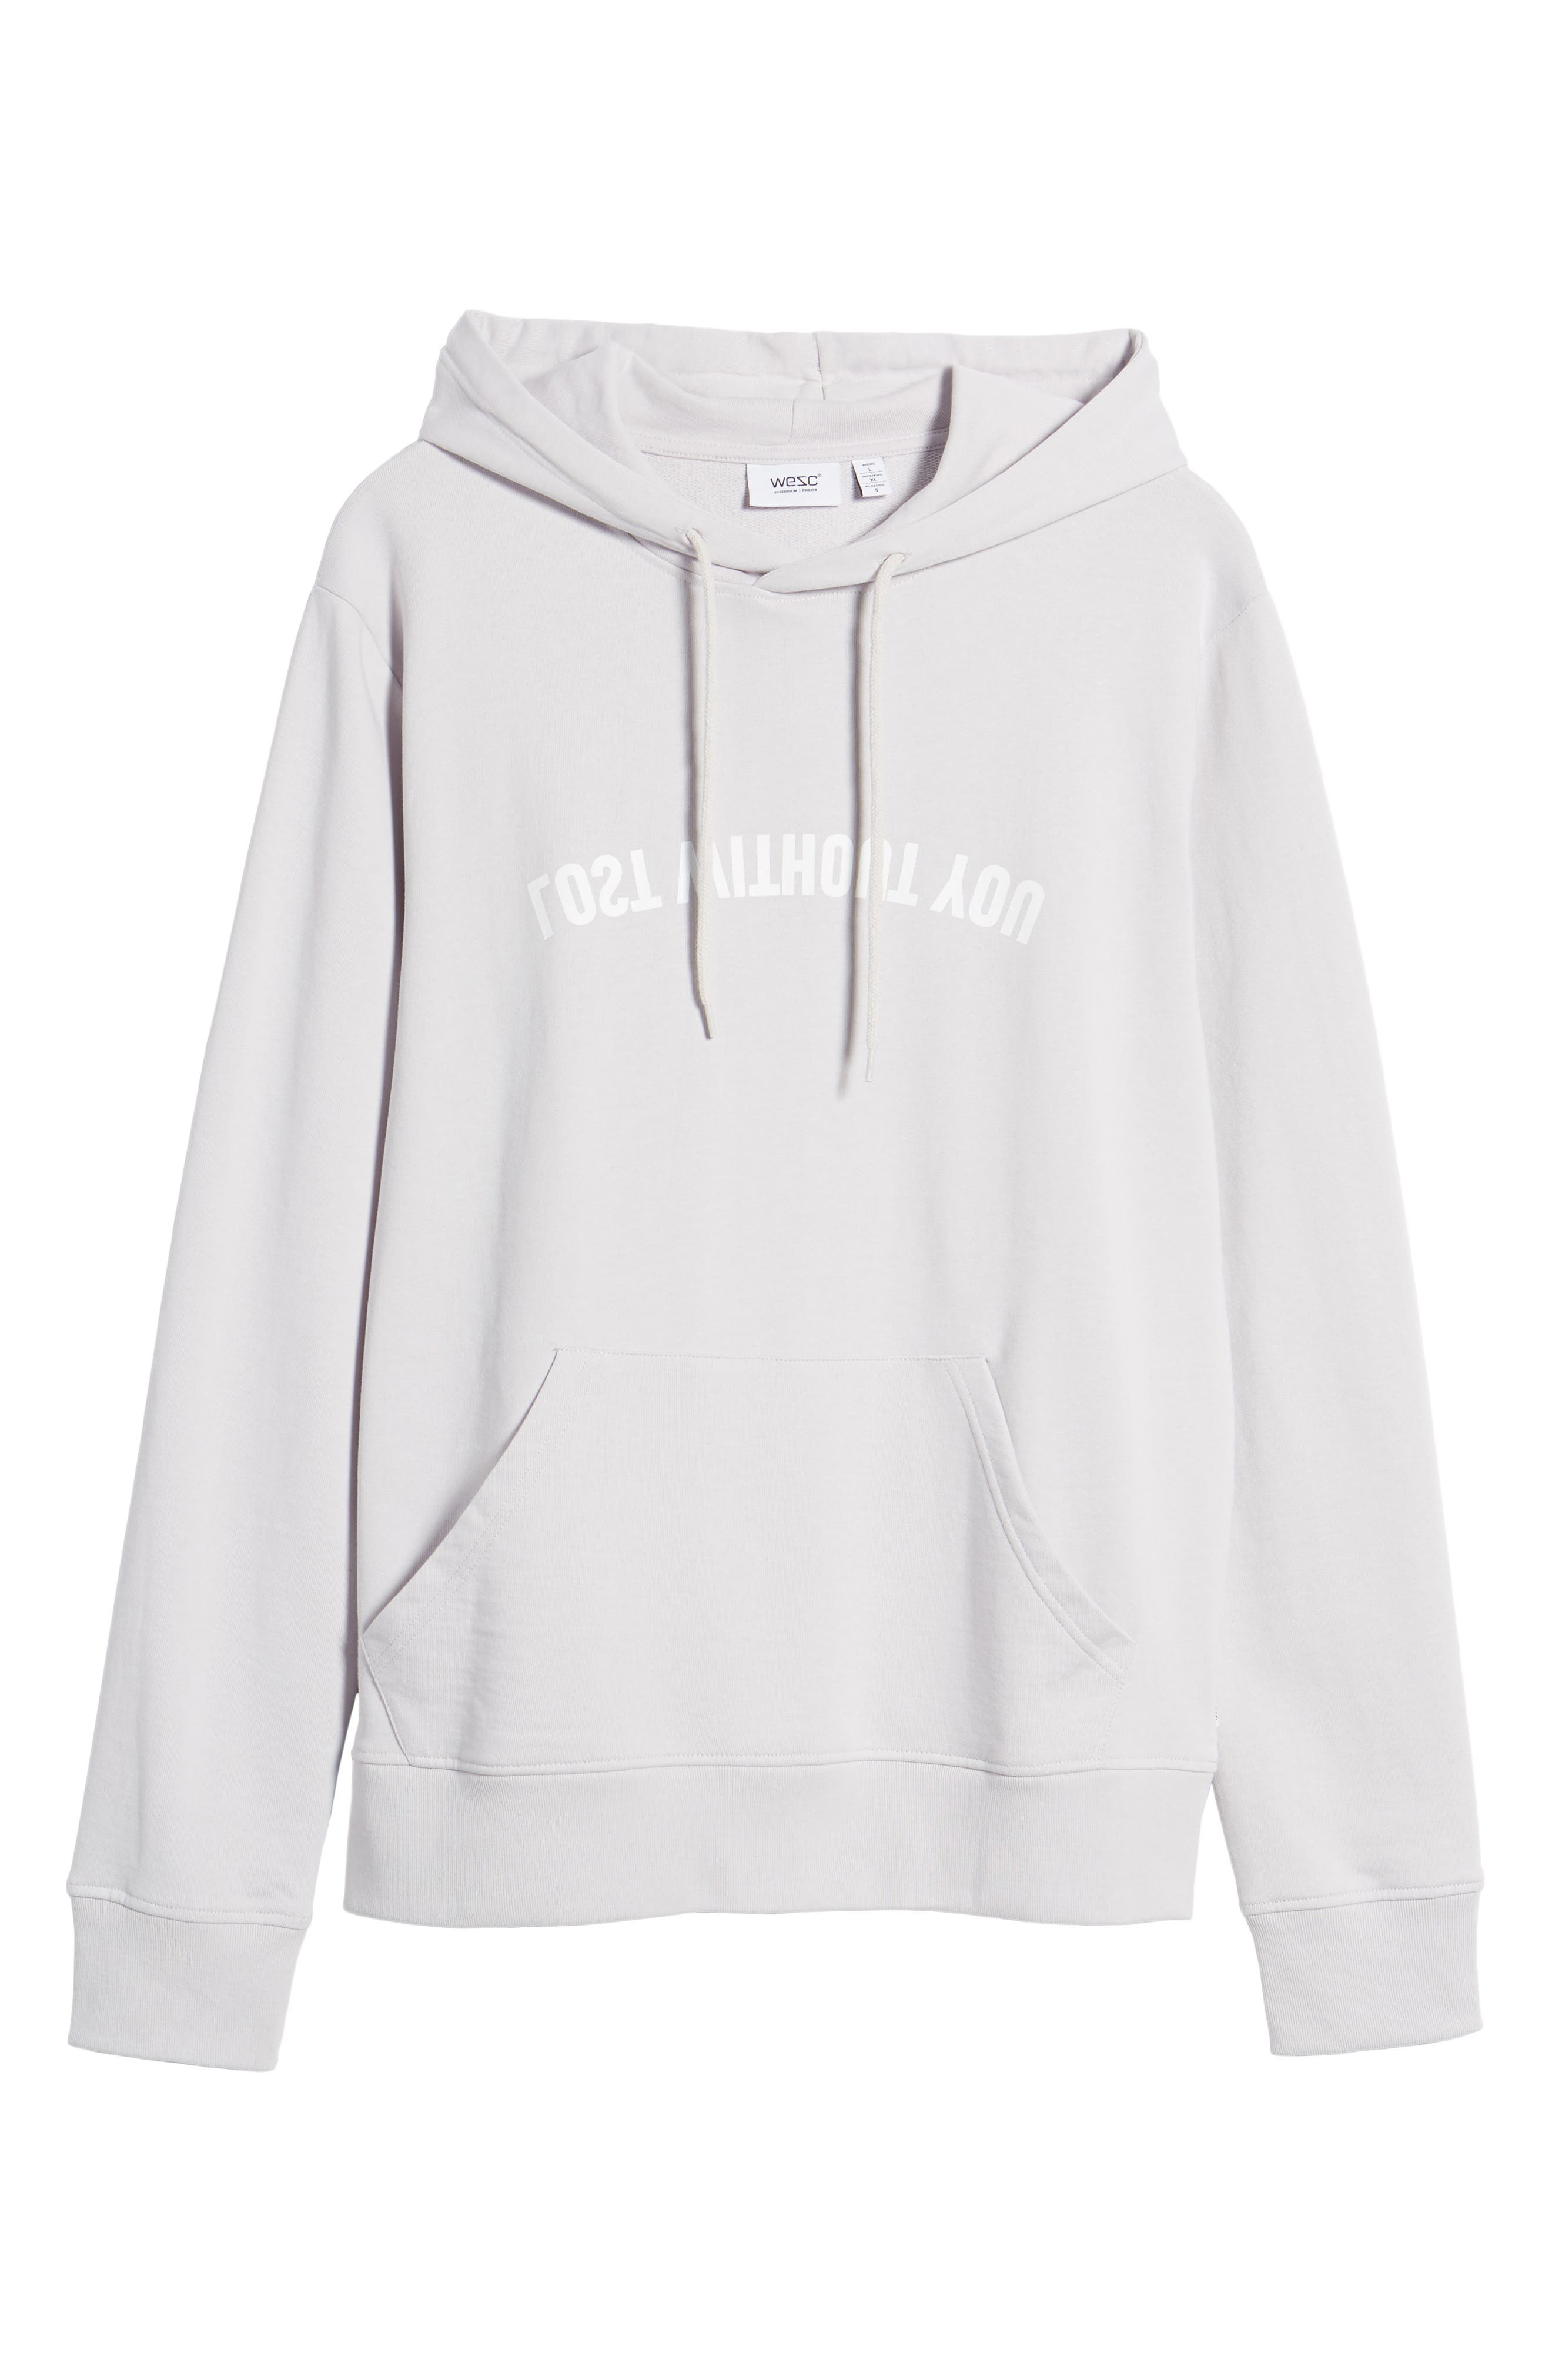 Mike Mirror Graphic Hoodie,                             Alternate thumbnail 6, color,                             530